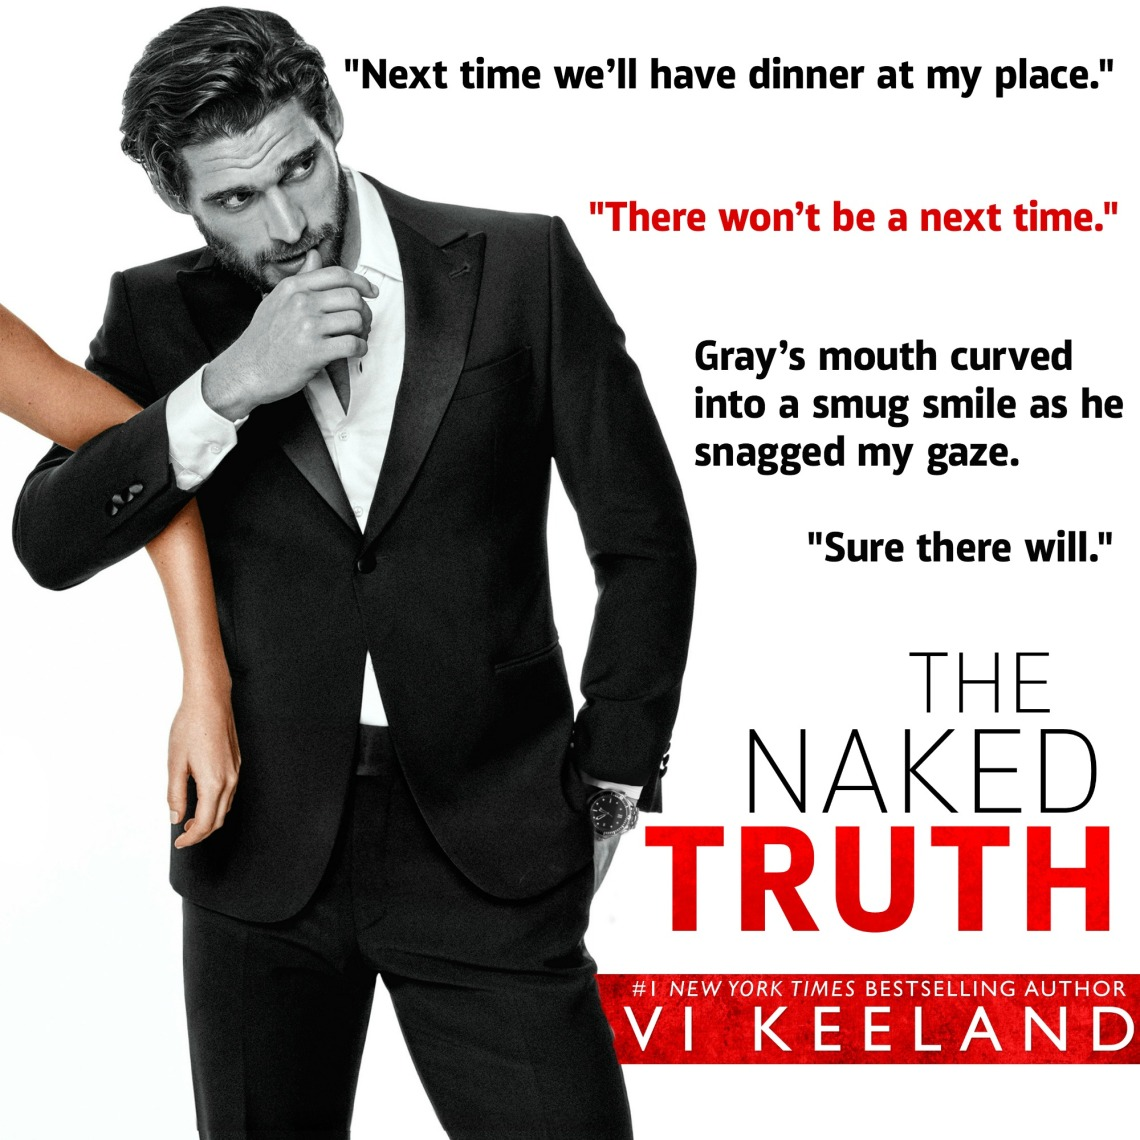 The Naked Truth Sneak Peek teaser